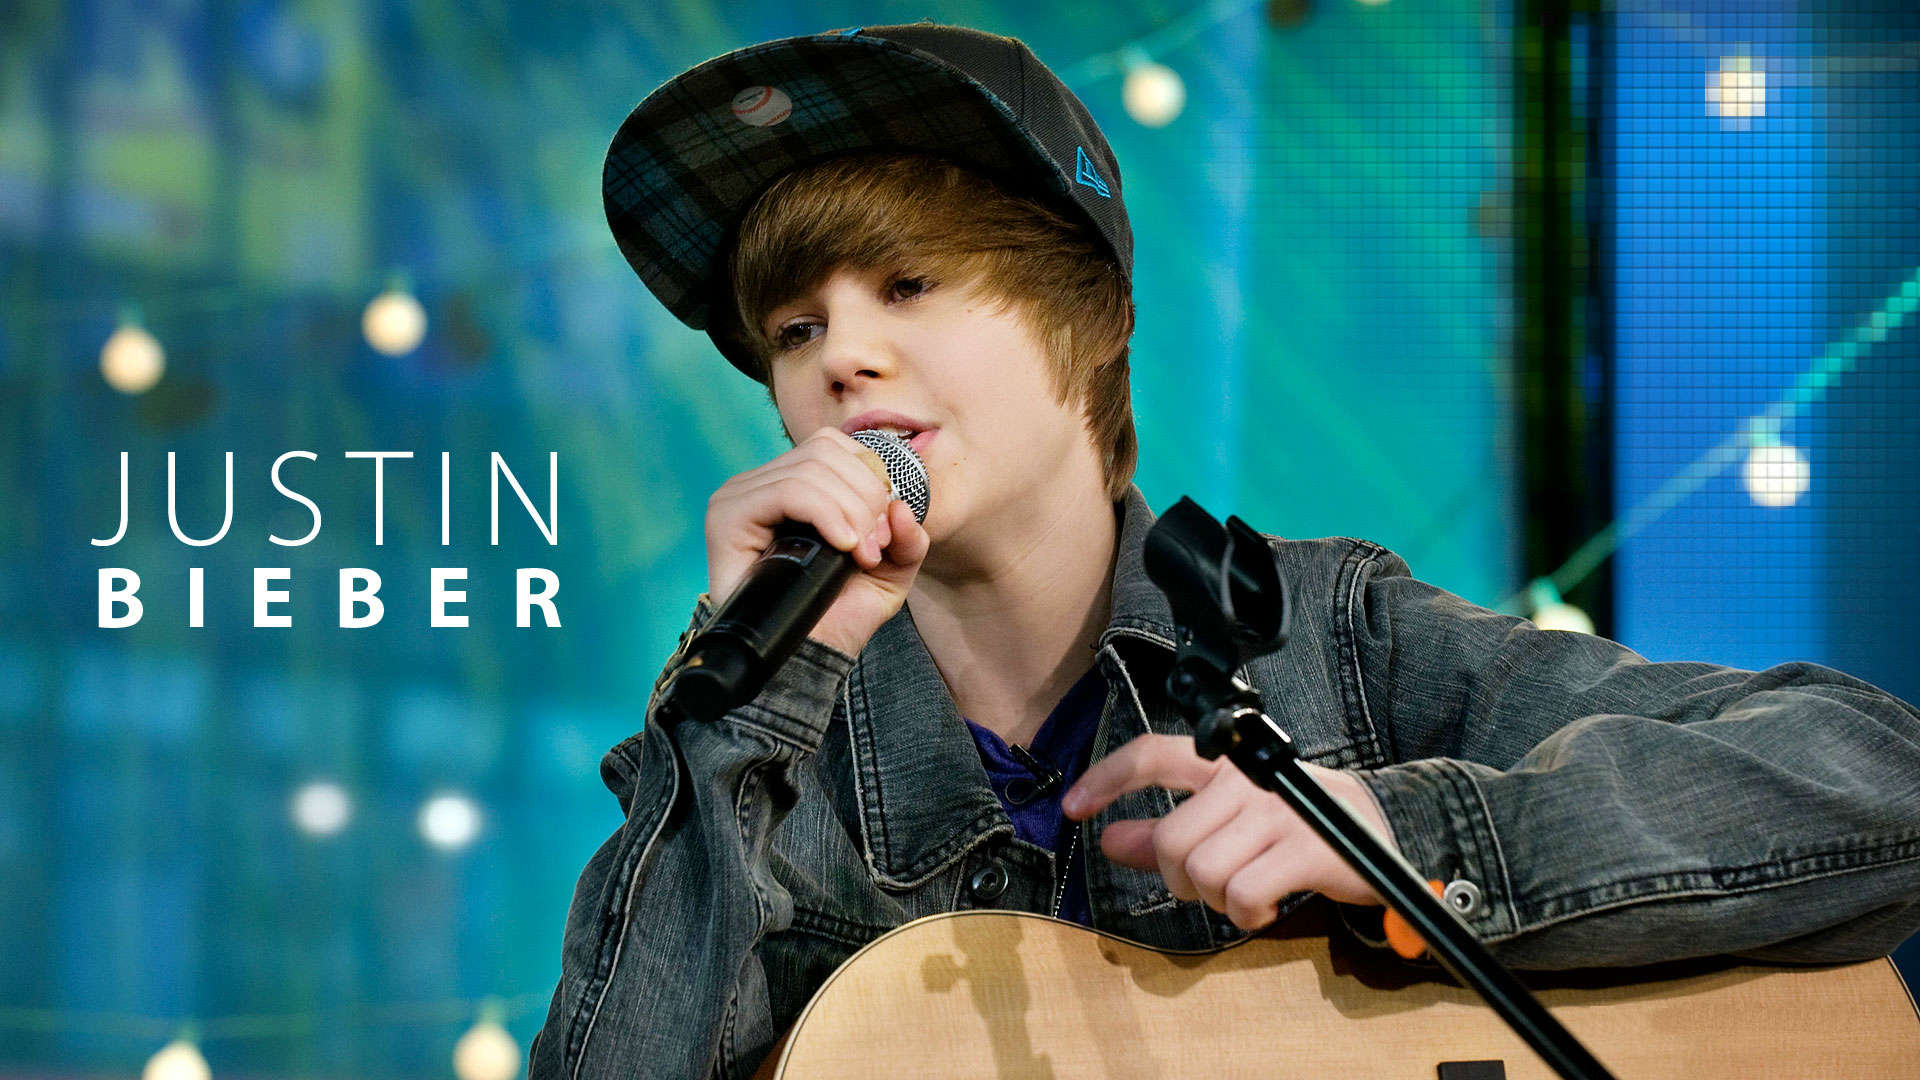 Download-Justin-Bieber-Free-Download-Gallery-wallpaper-wp3404881